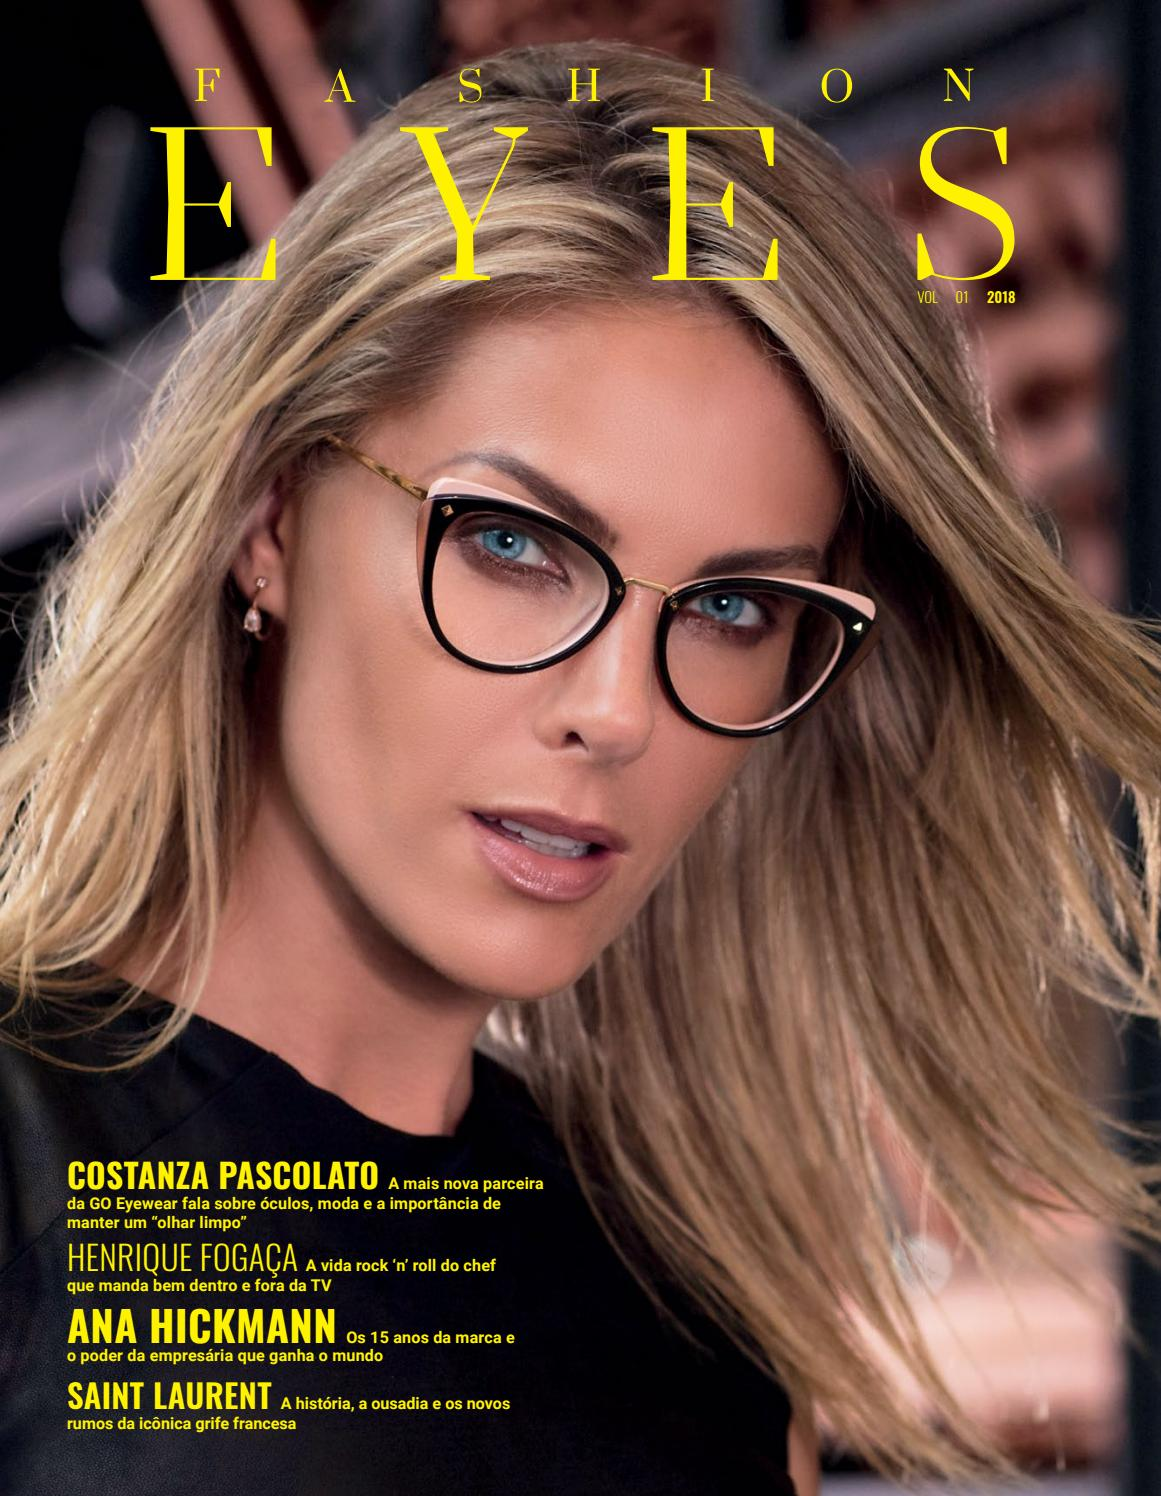 Revista Fashion Eyes by goeyewear - issuu 9f85408e4c